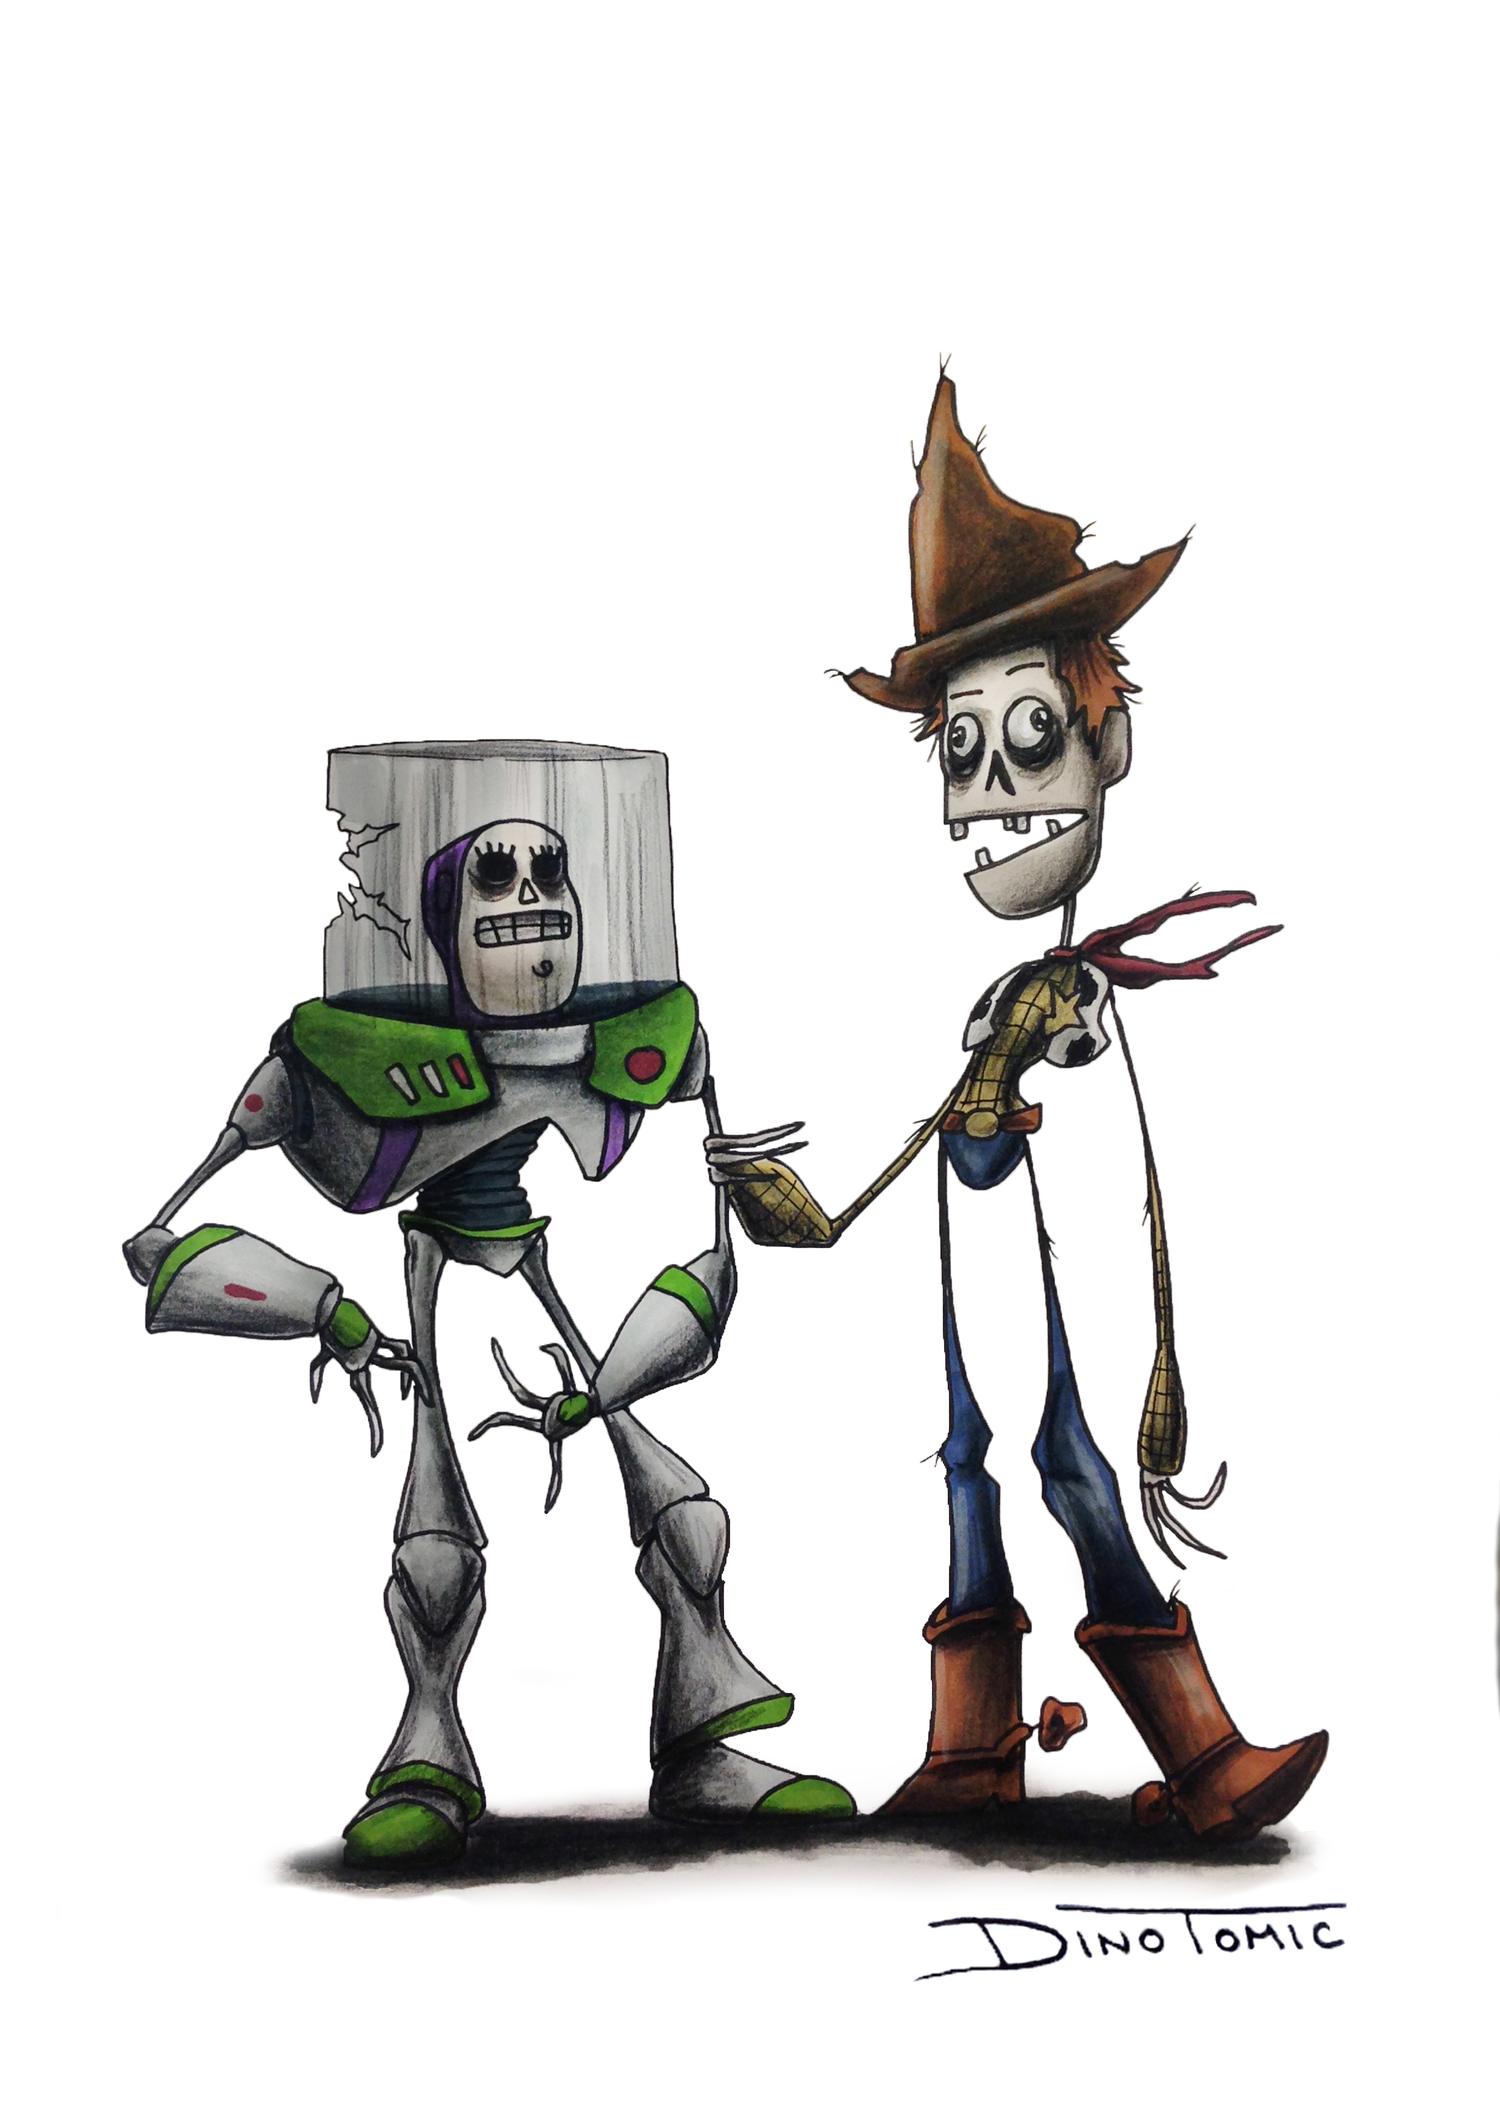 Image of #76 Woody and buzz